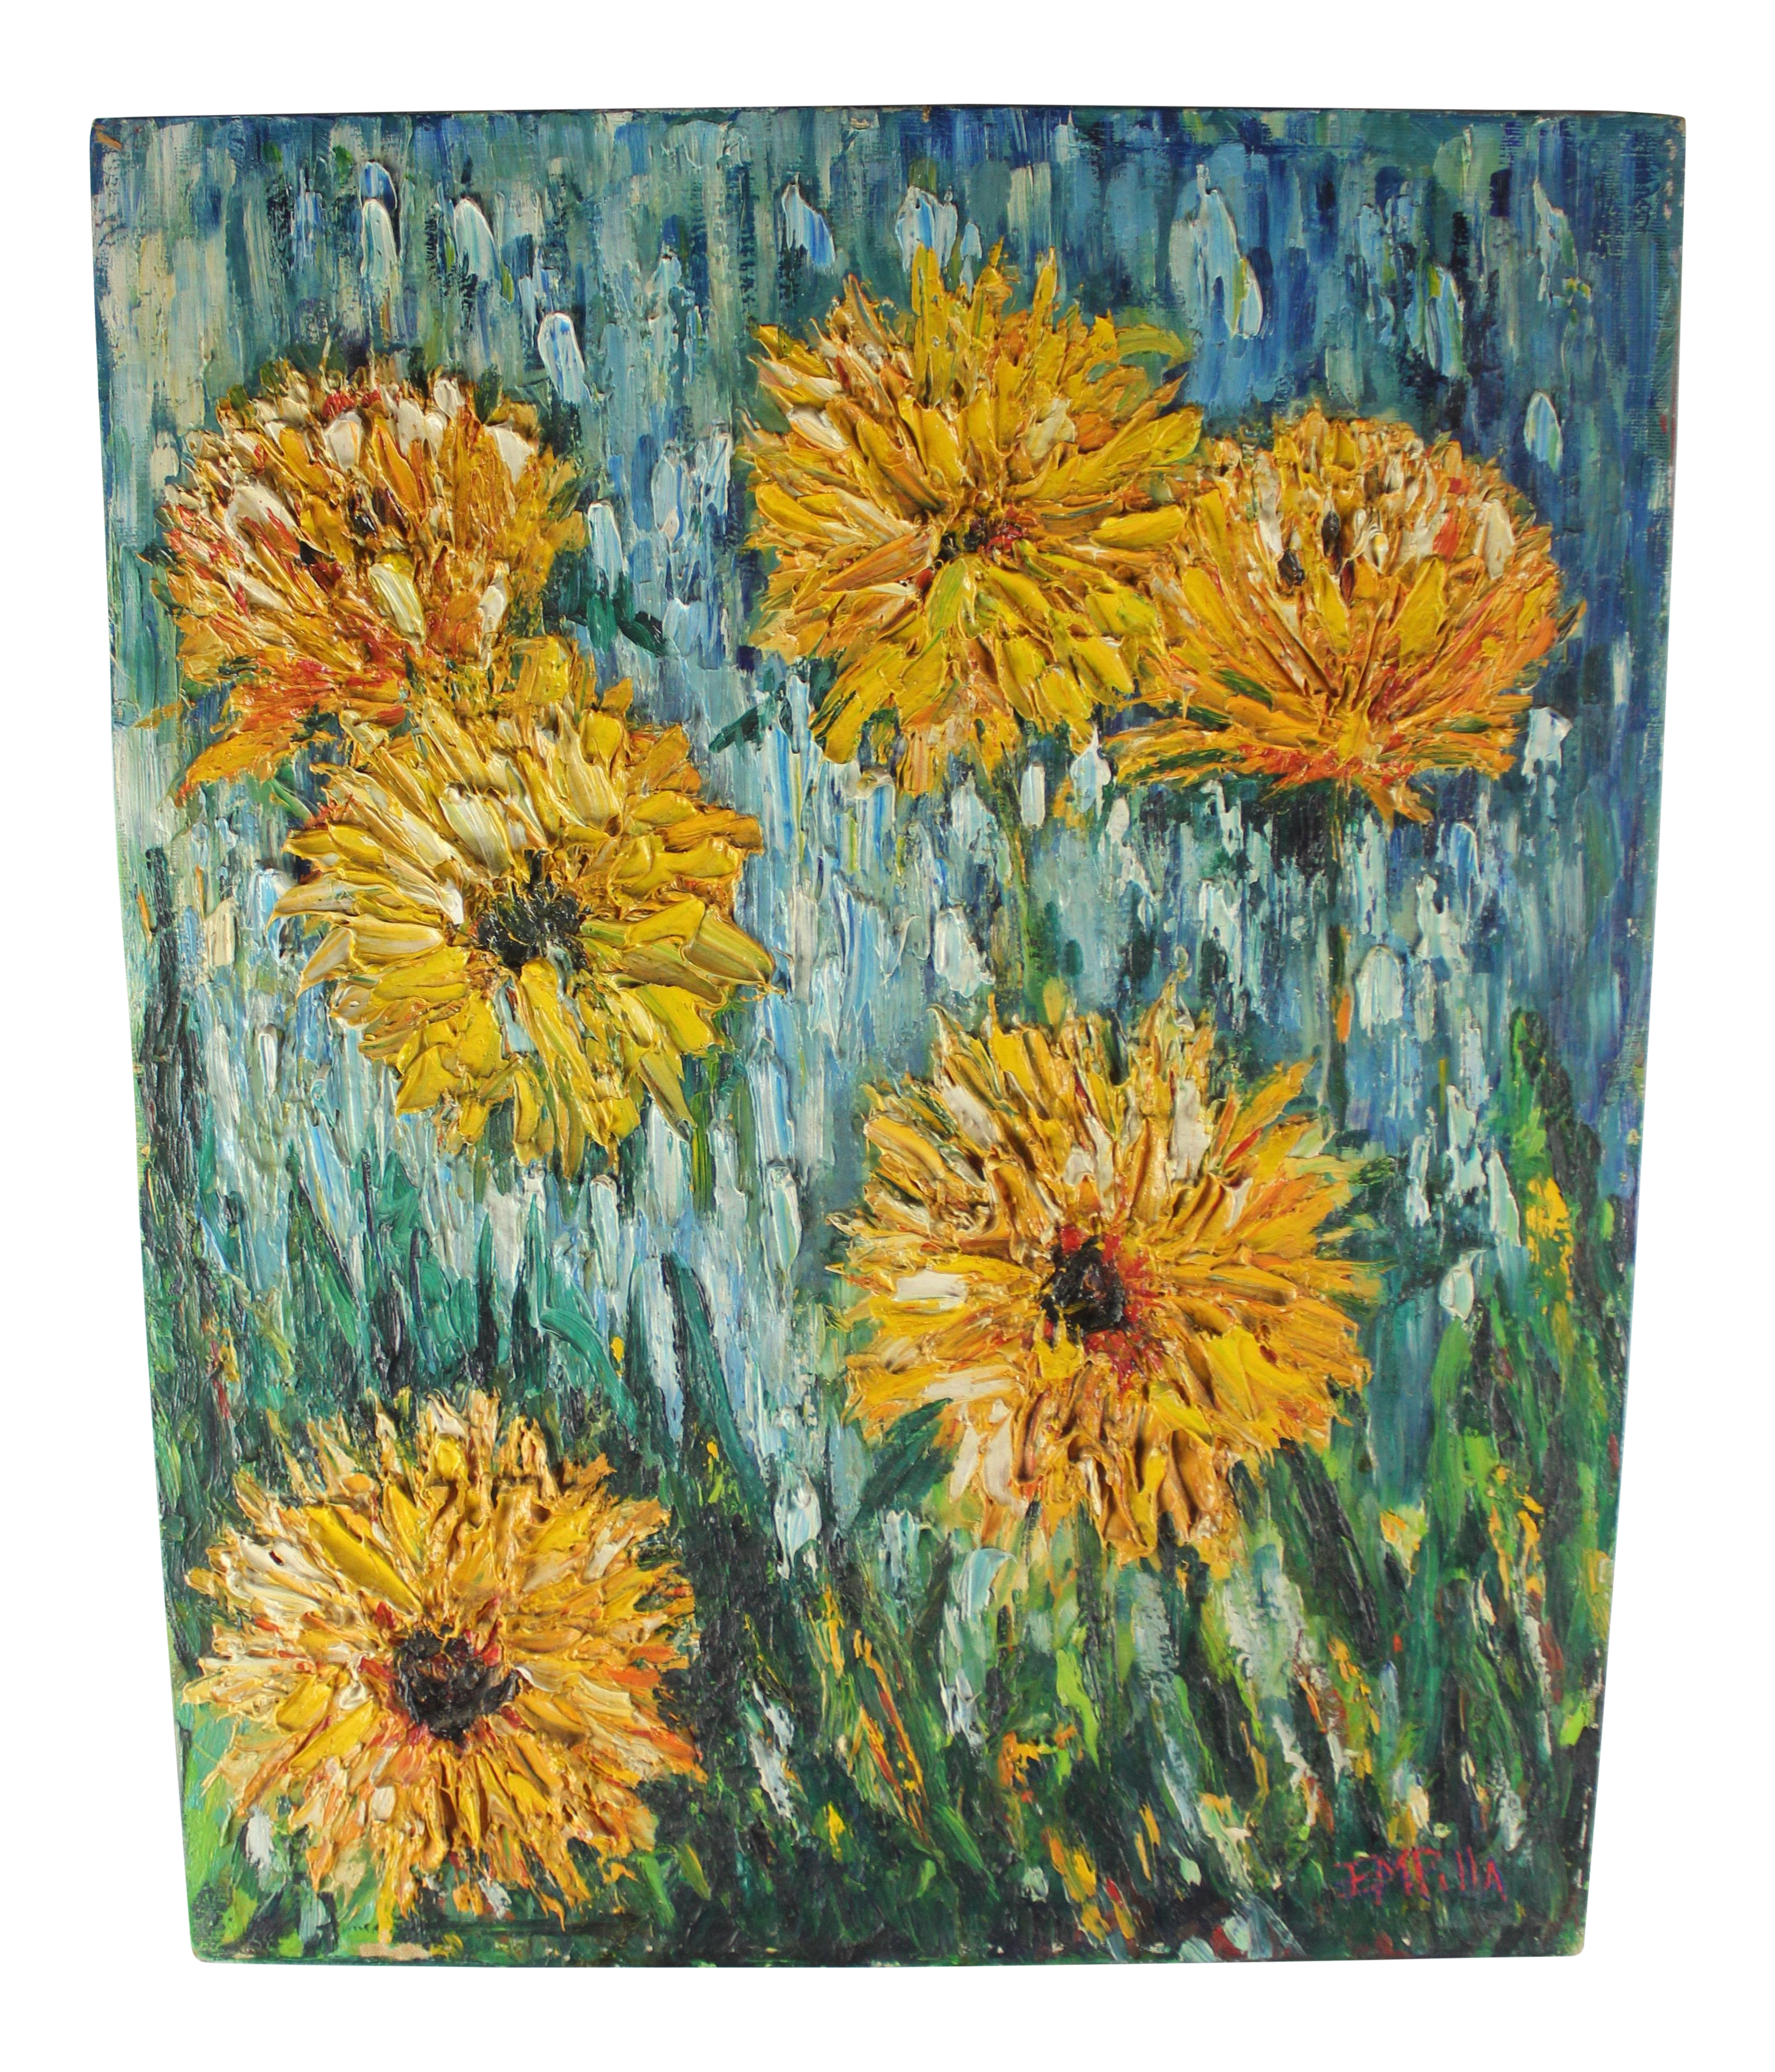 Impressionistic drawing basic. Impressionist style flower painting